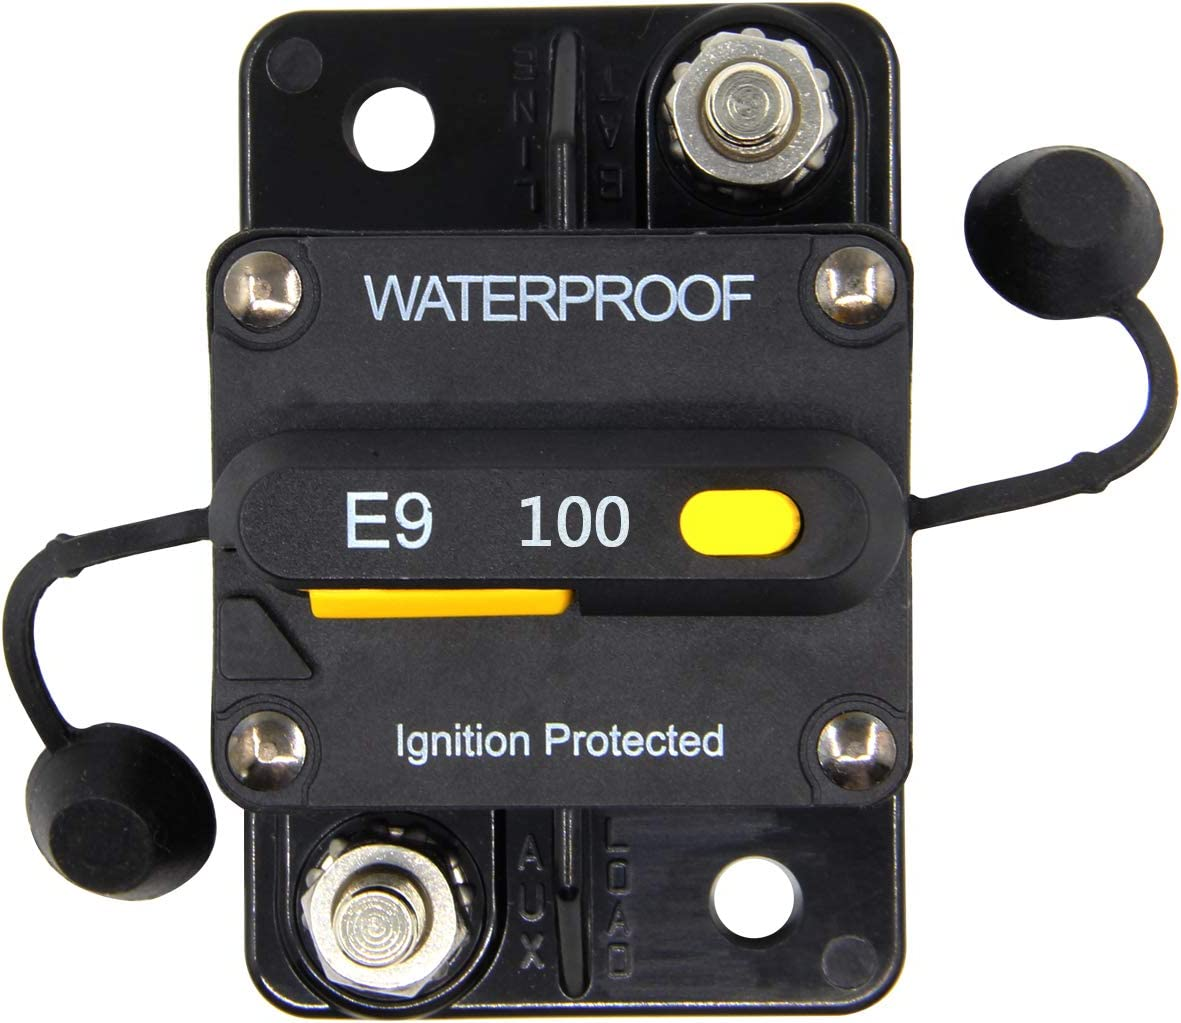 Ignition Protected T Tocas 50 Amp Circuit Breaker with Manual Reset 12V- 48VDC 50A Water Resistant